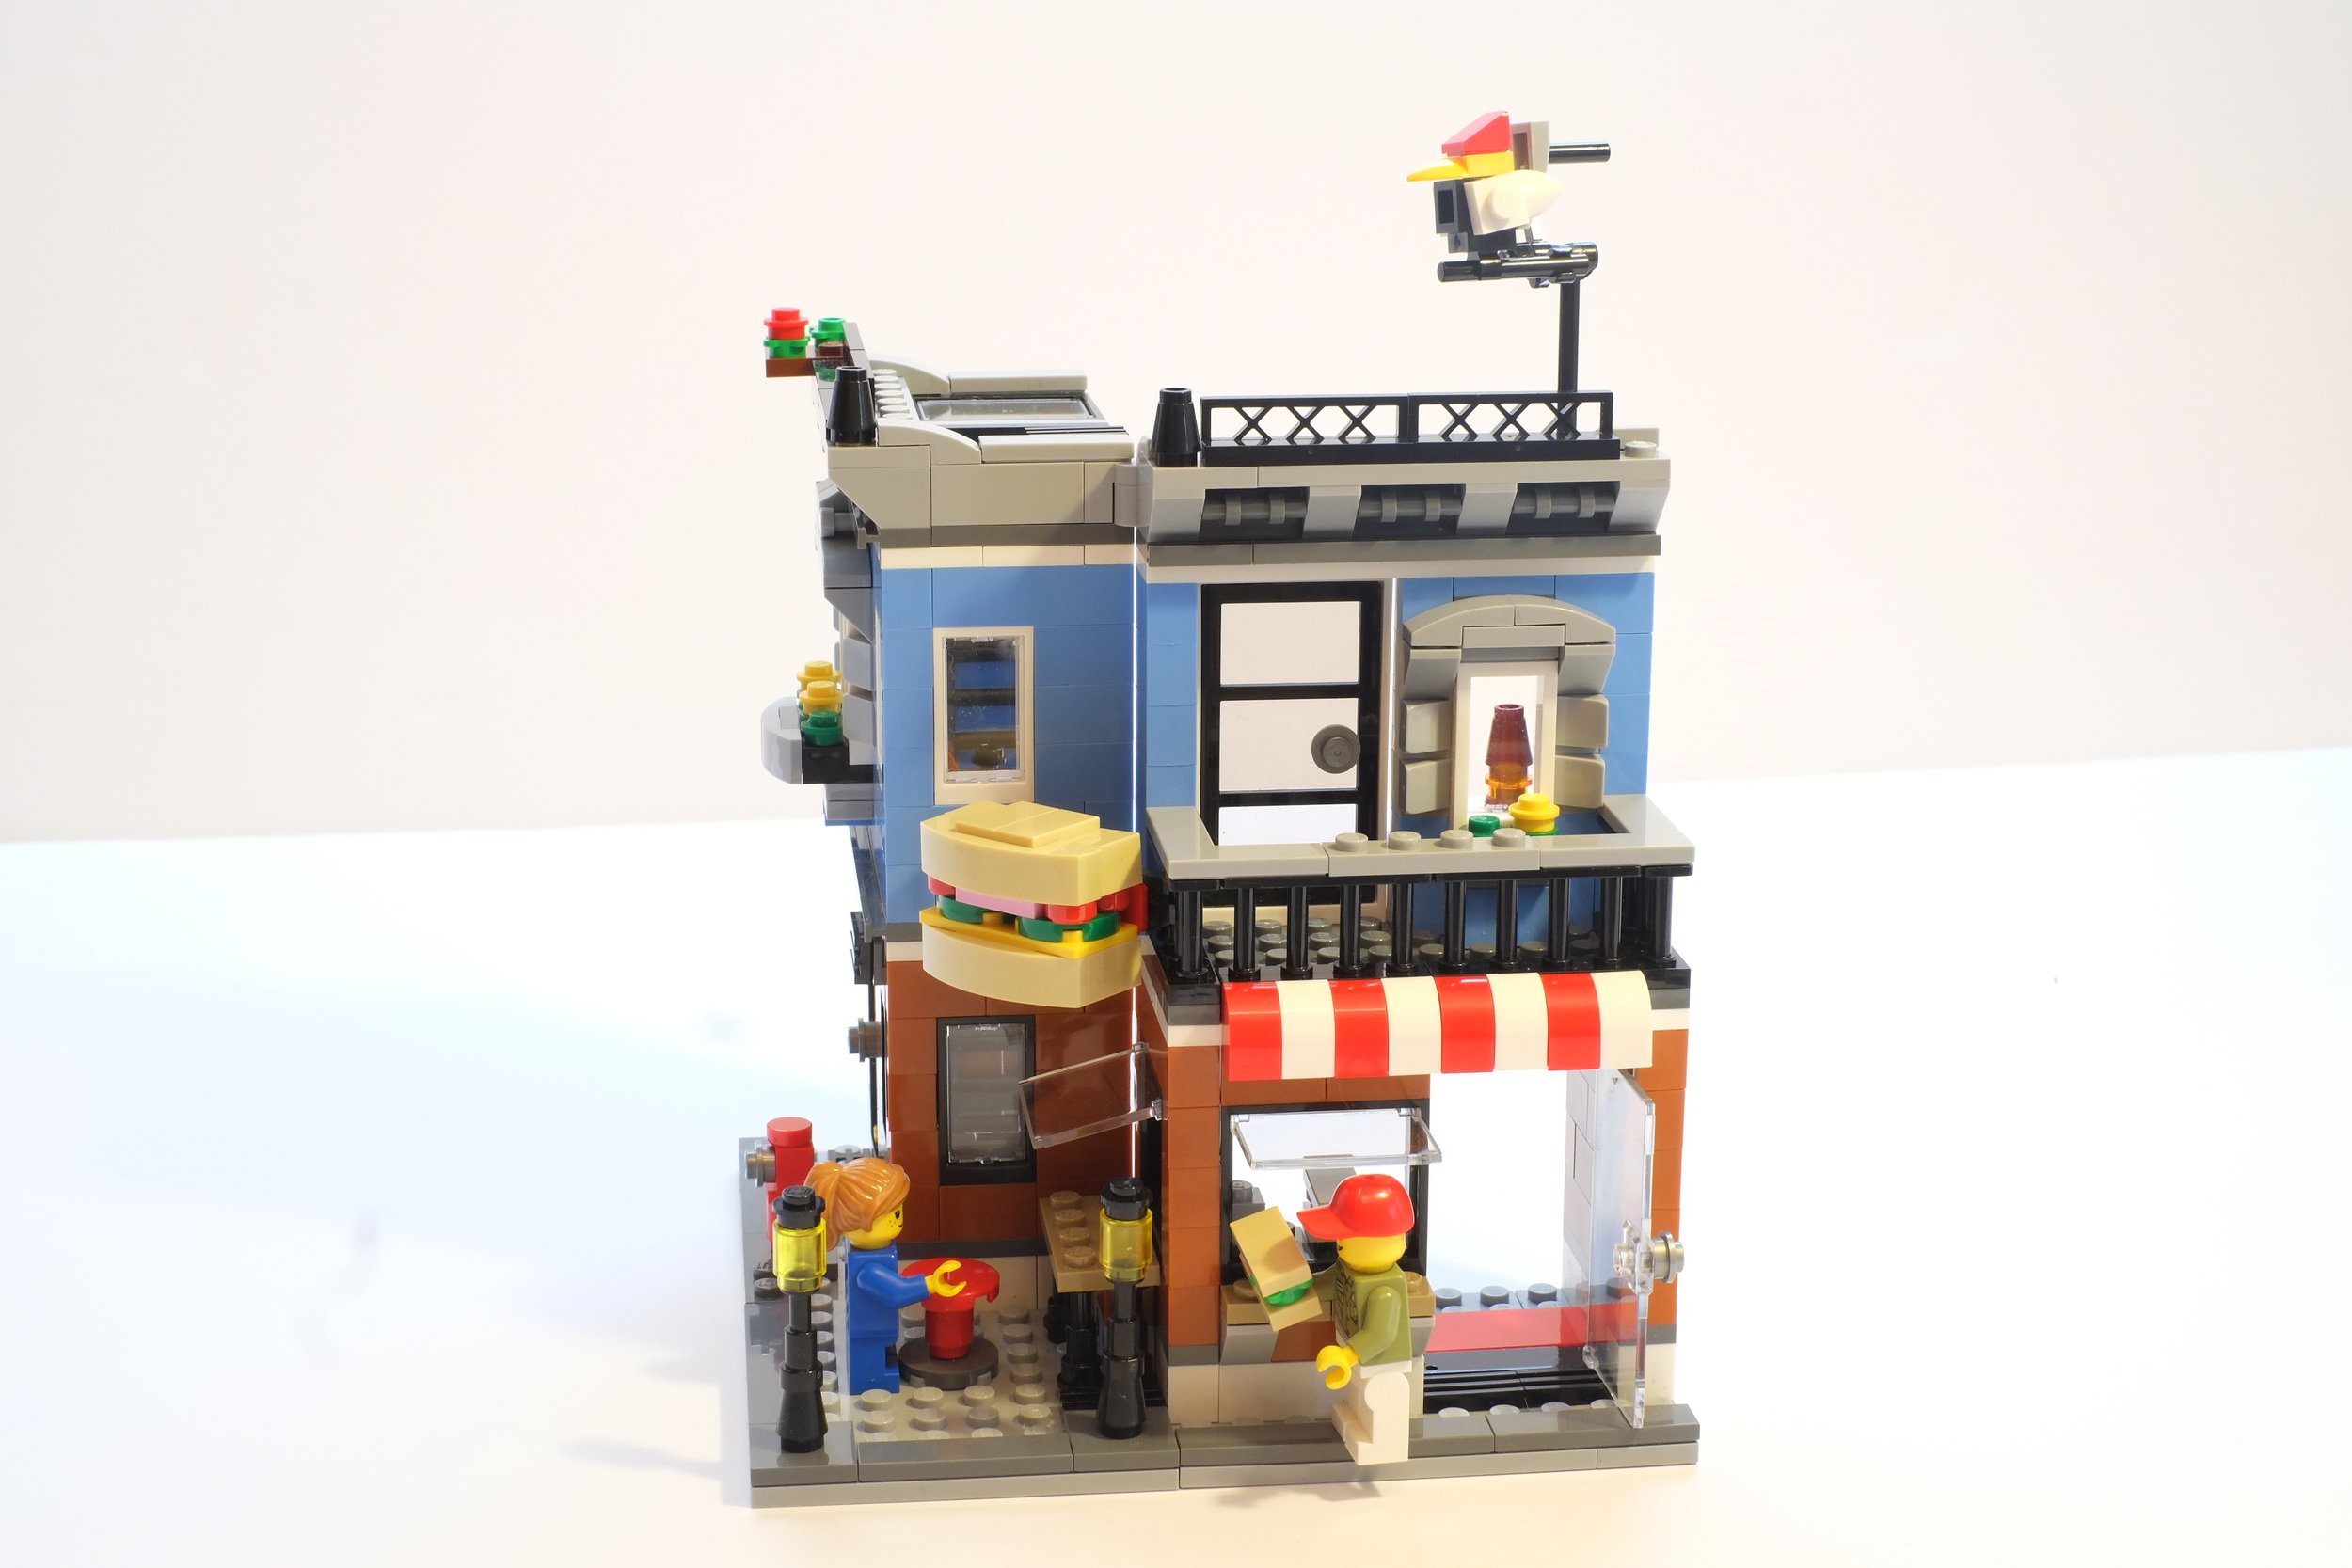 One of Heistheway's images for her stop-motion video contest entry for LEGO Build and Rebuild